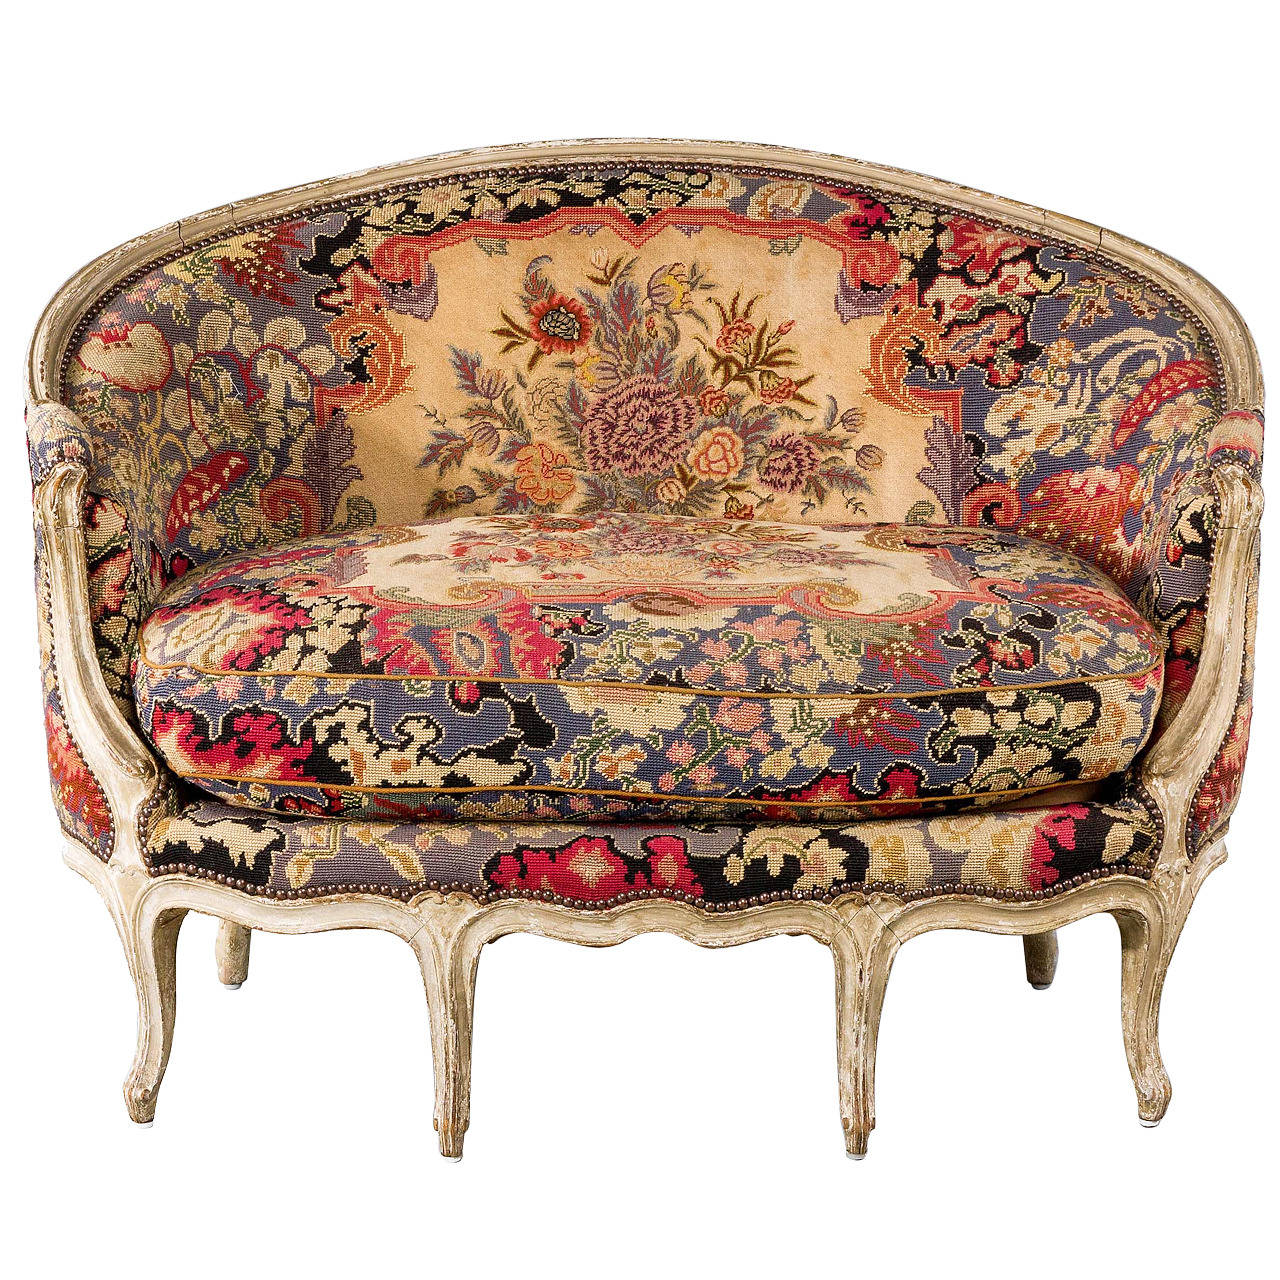 Louis xv design canap at 1stdibs for Canape louis 15